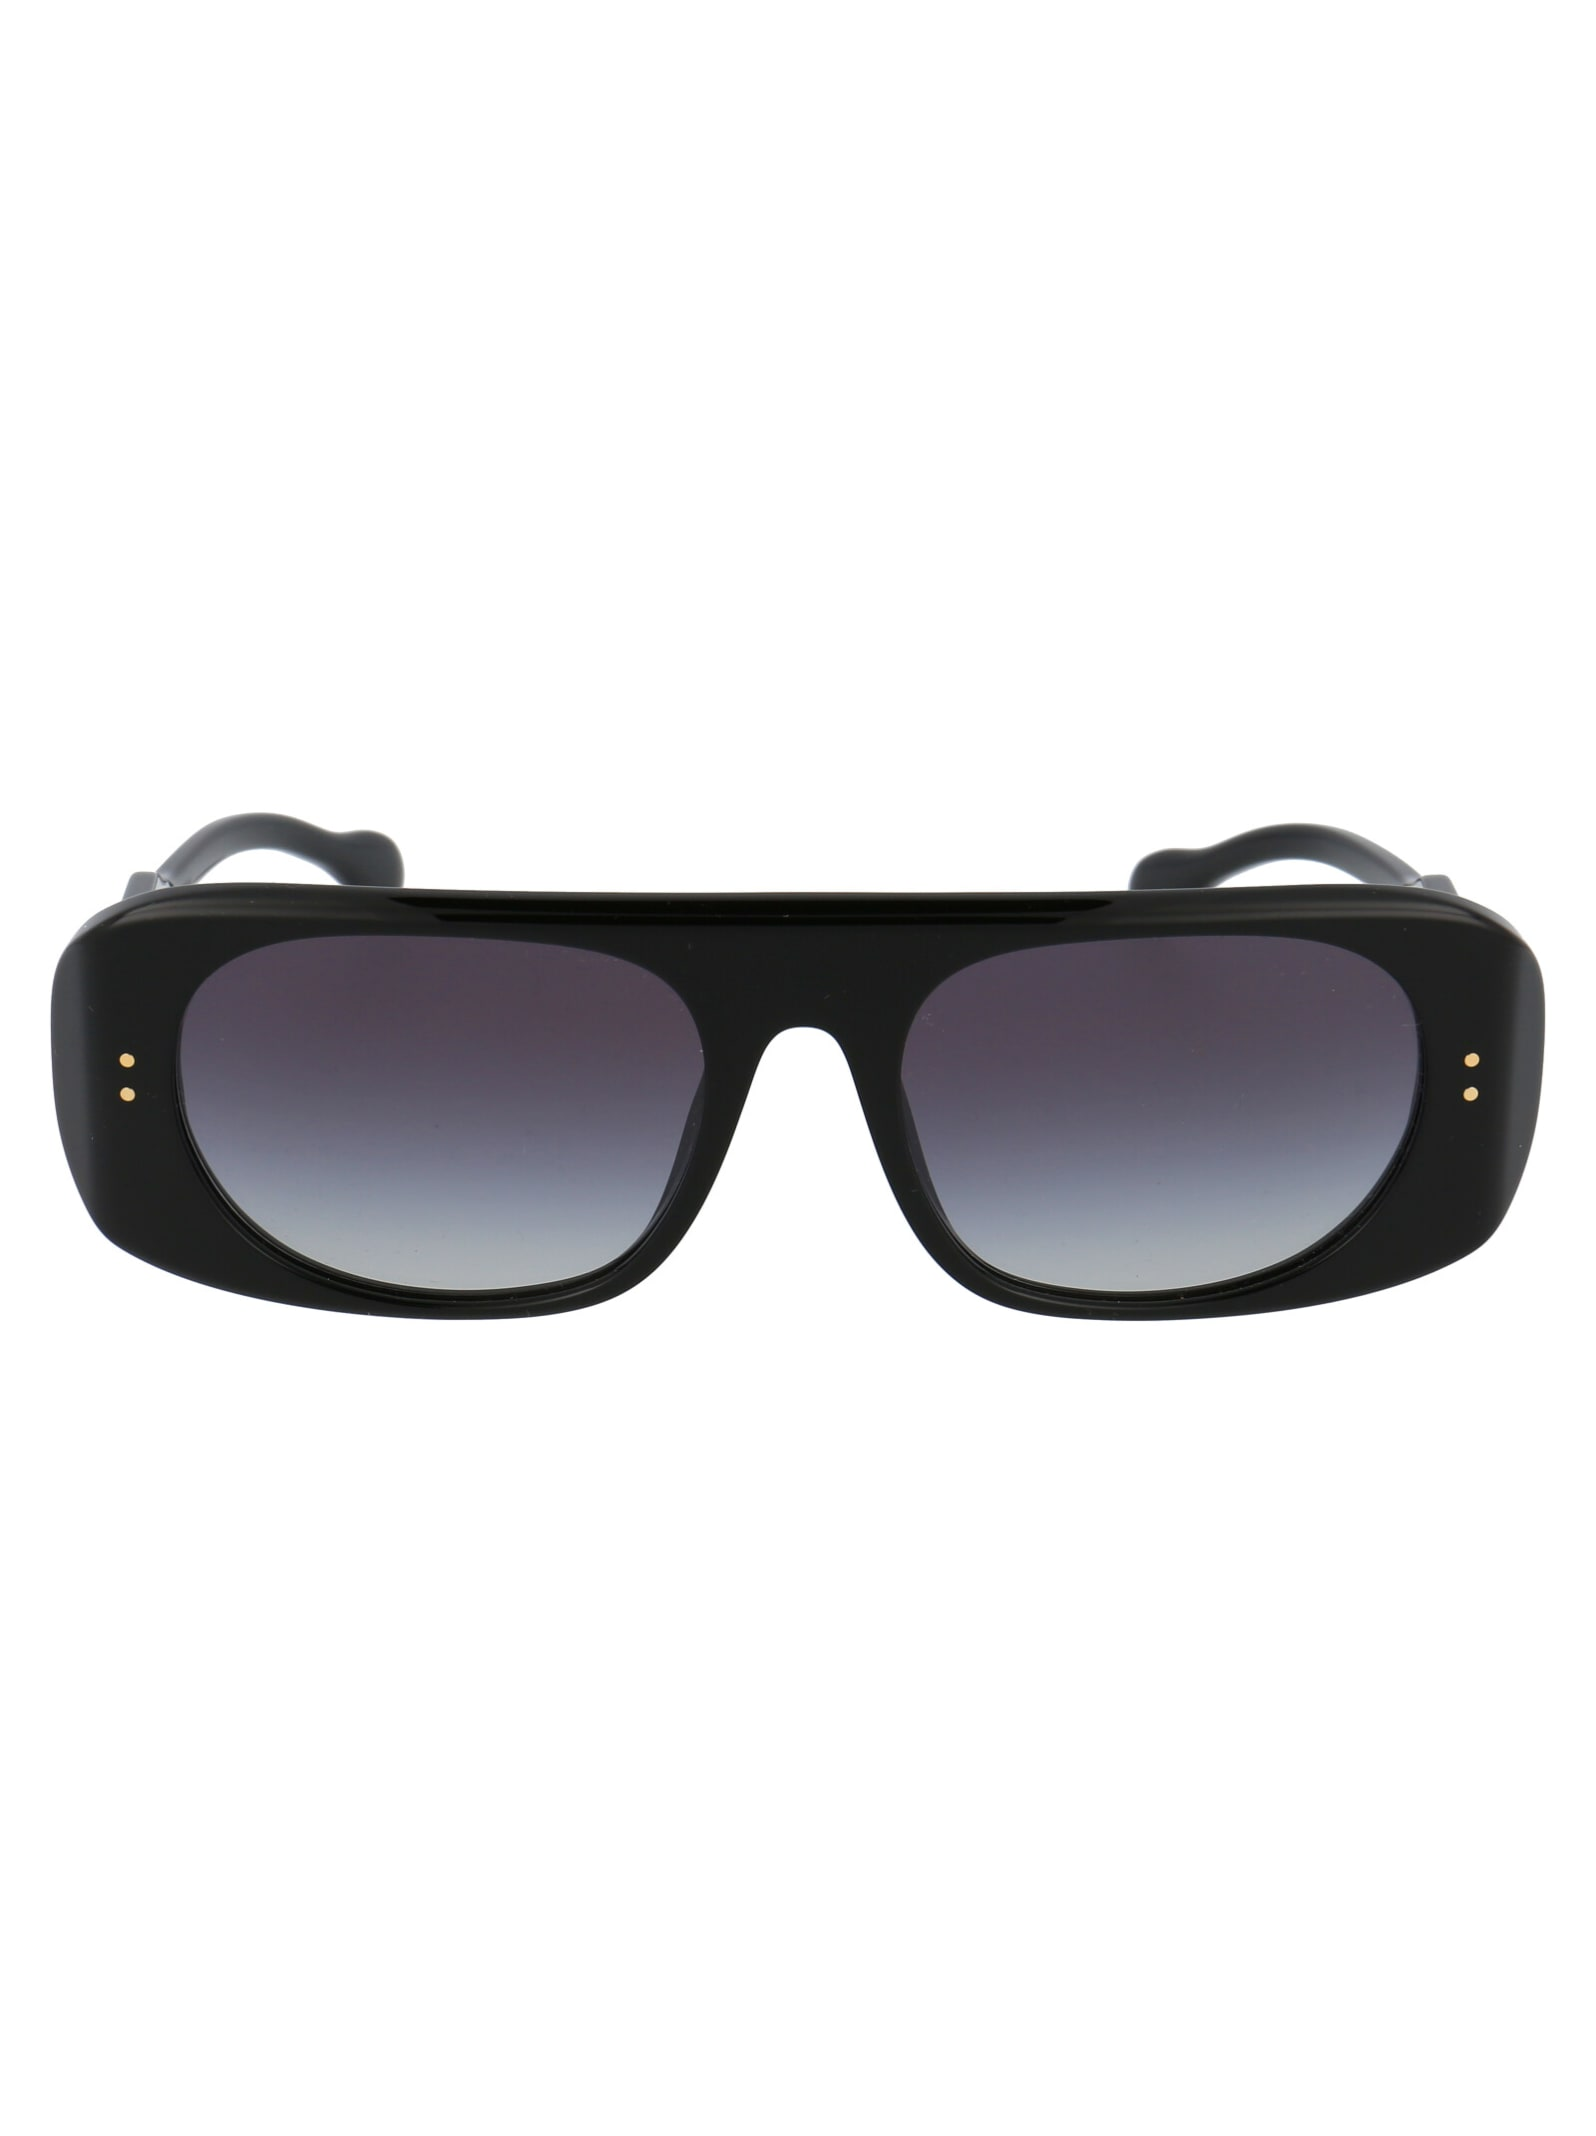 0be4322 Sunglasses